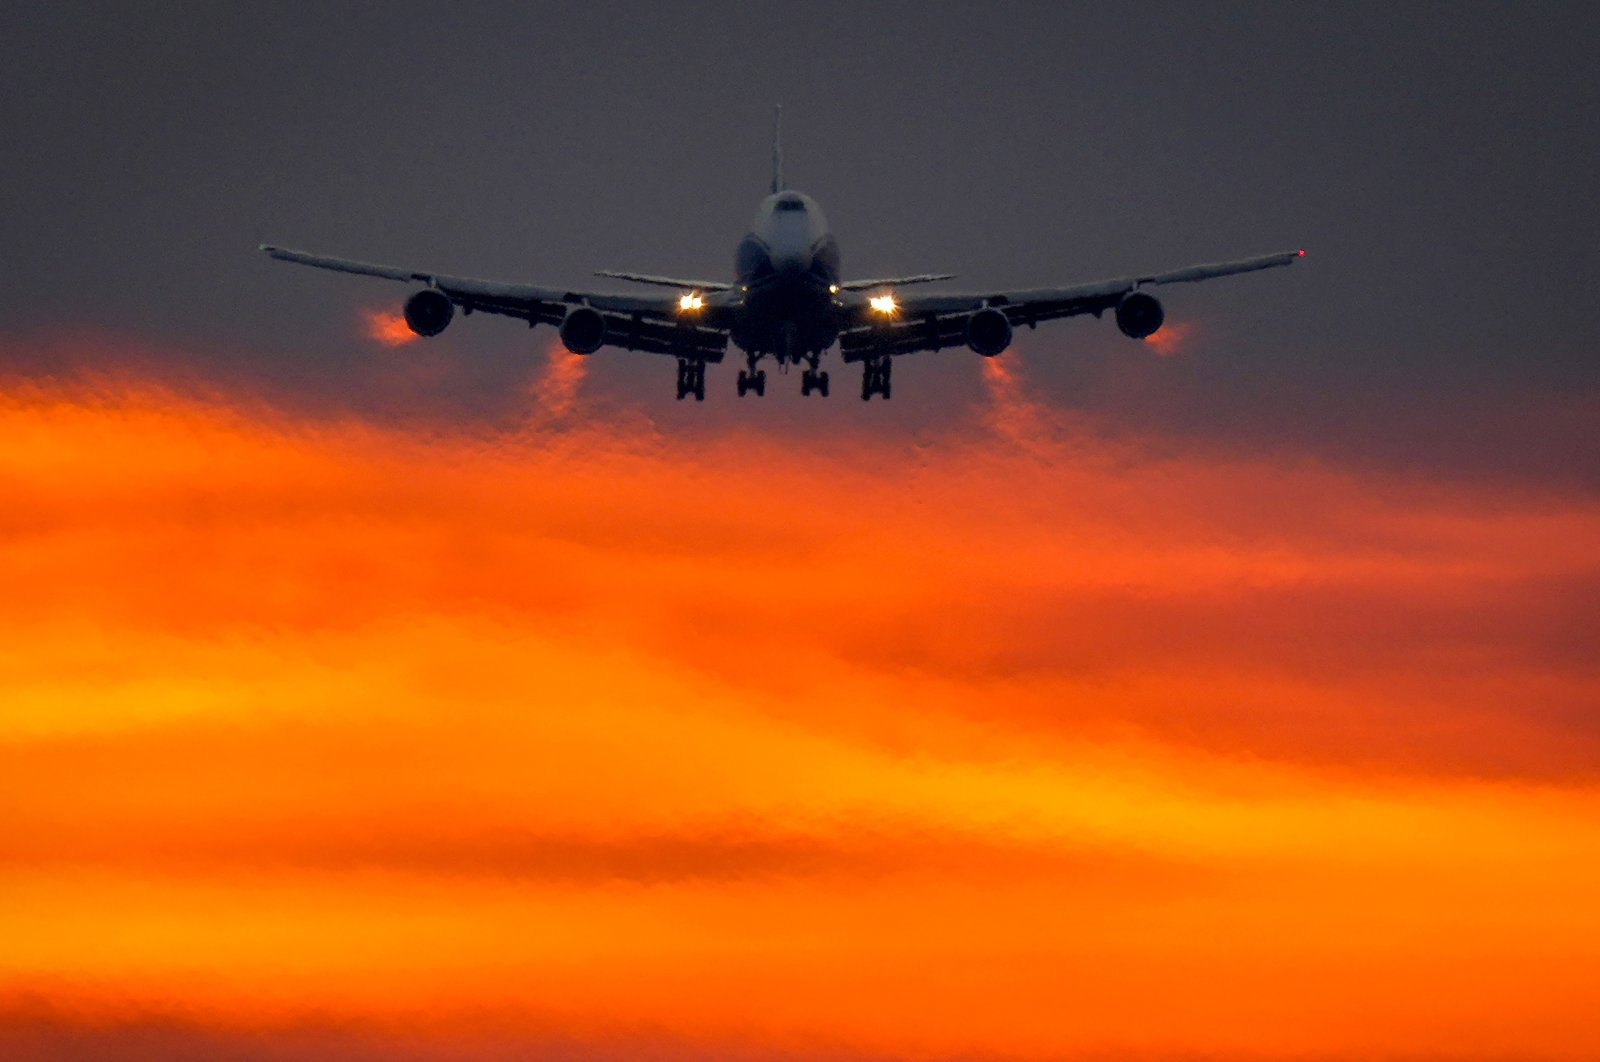 An aircraft approaches the international airport in Frankfurt as the sun rises, Germany, Aug. 9, 2021. (AP Photo)